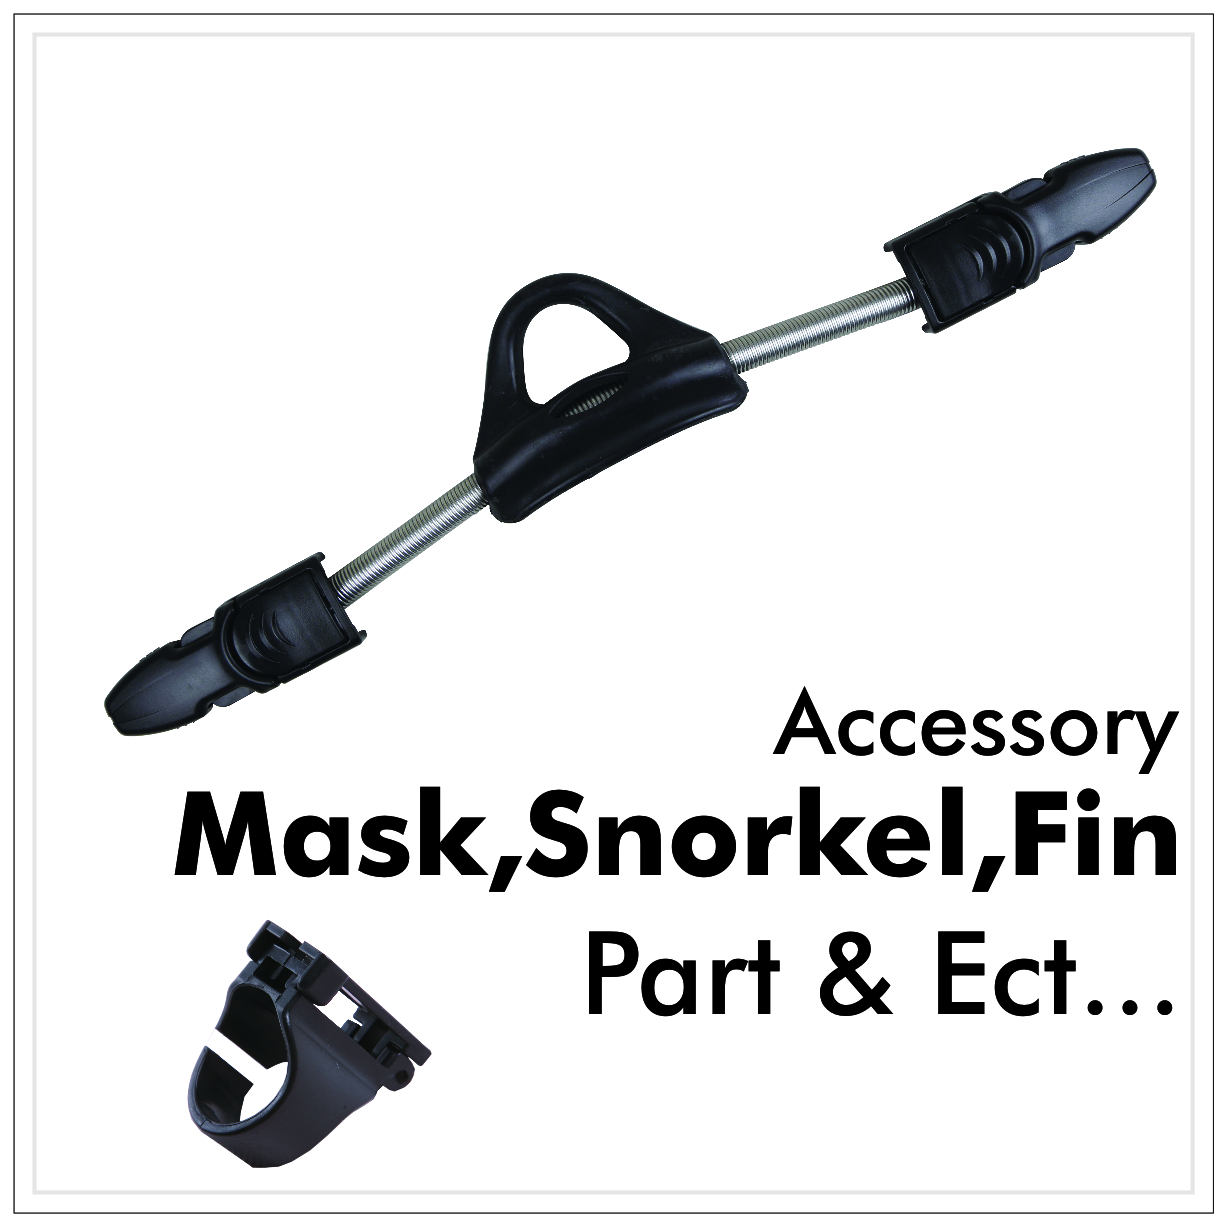 MASK,SNORKEL,FIN, KNIFE,TORCH PARTS